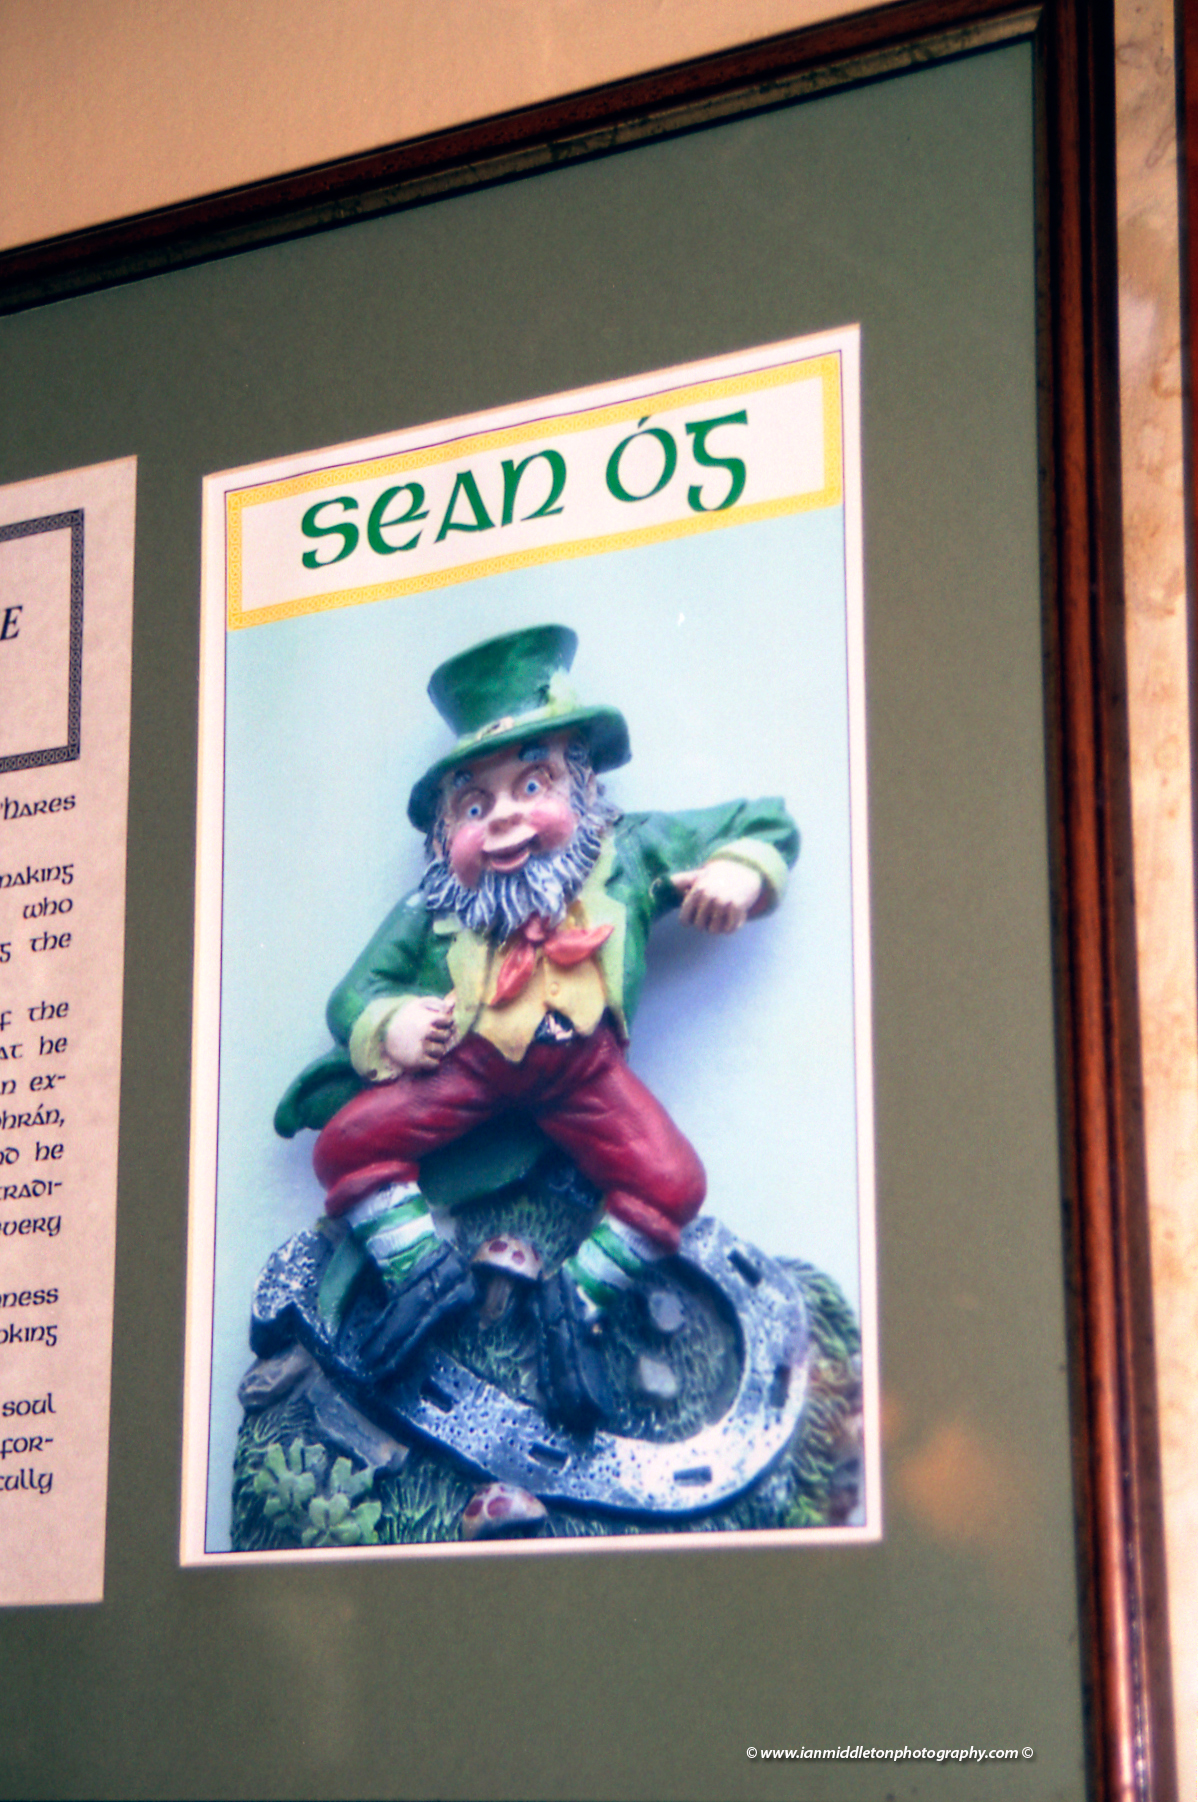 Sean Og the leprechaun in O hare pub in Carlingford. County Louth, Ireland.